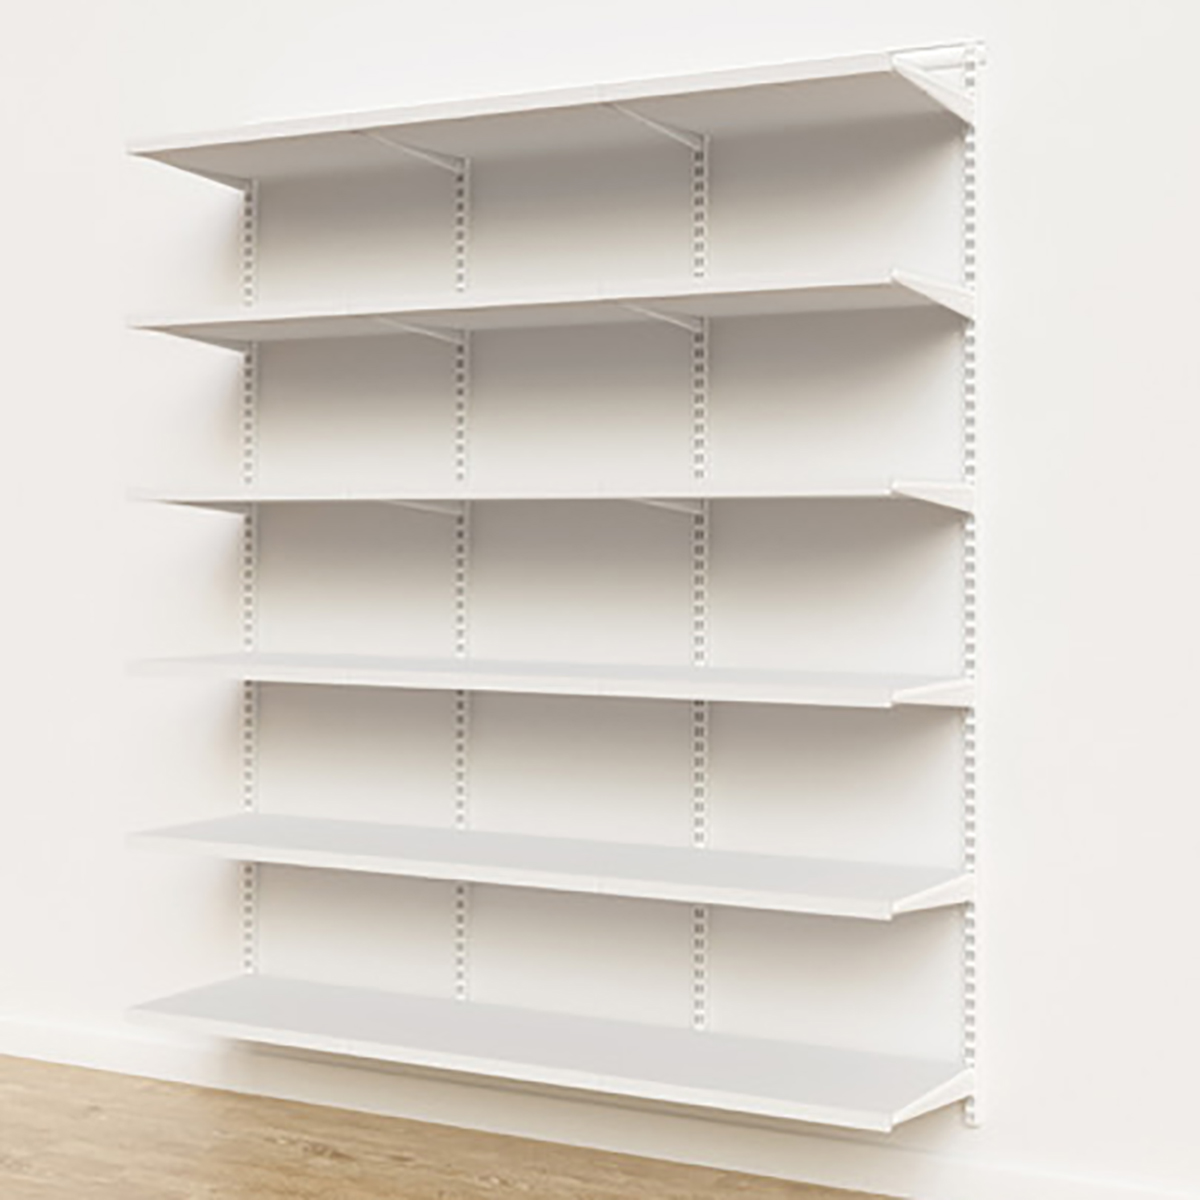 Elfa Décor 6' White Basic Shelving Units for Anywhere